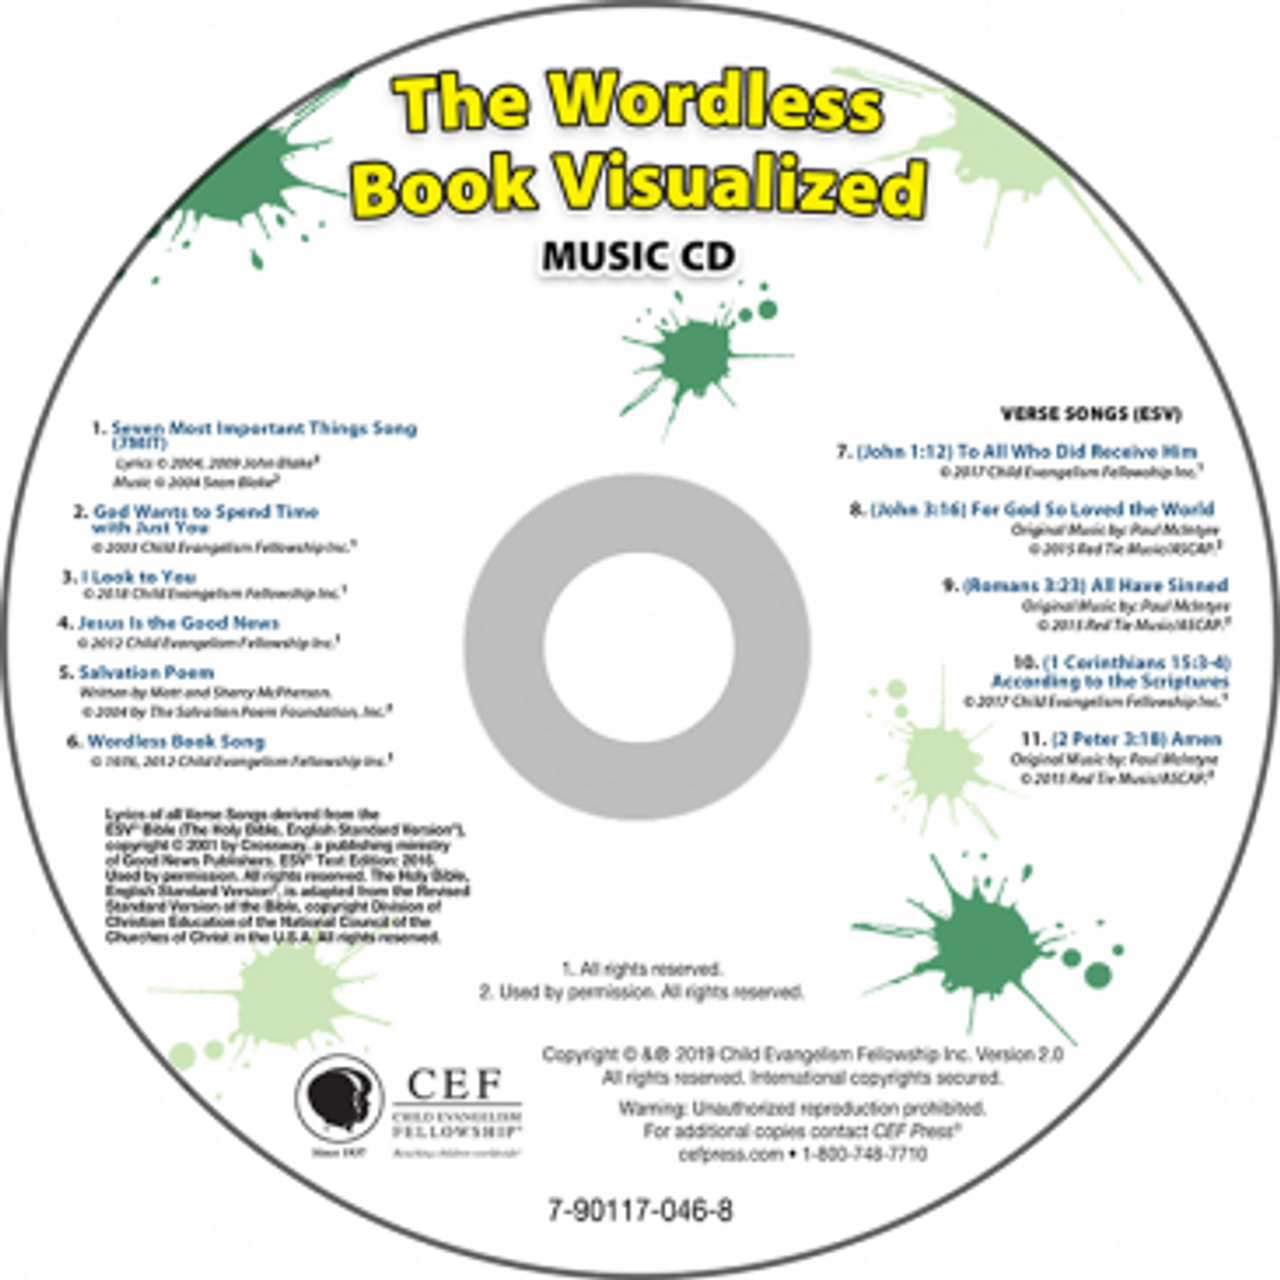 The Wordless Book Visualized 2019 (music CD)